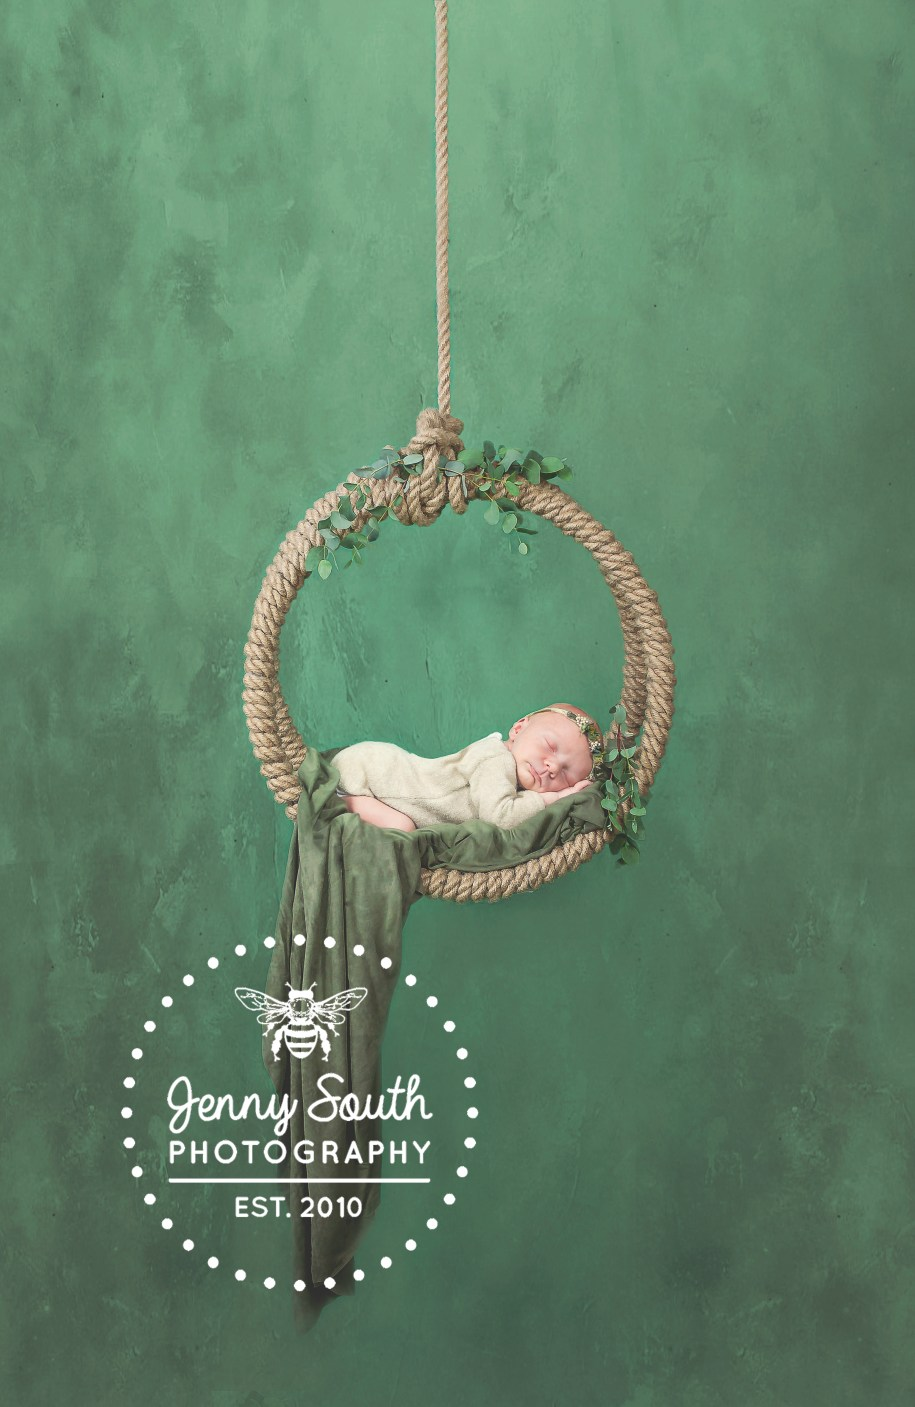 A rustic rope swing adorned with Eucalyptus leaves against a green fine art background. In it sleeps a newborn baby girl during her first photo shoot